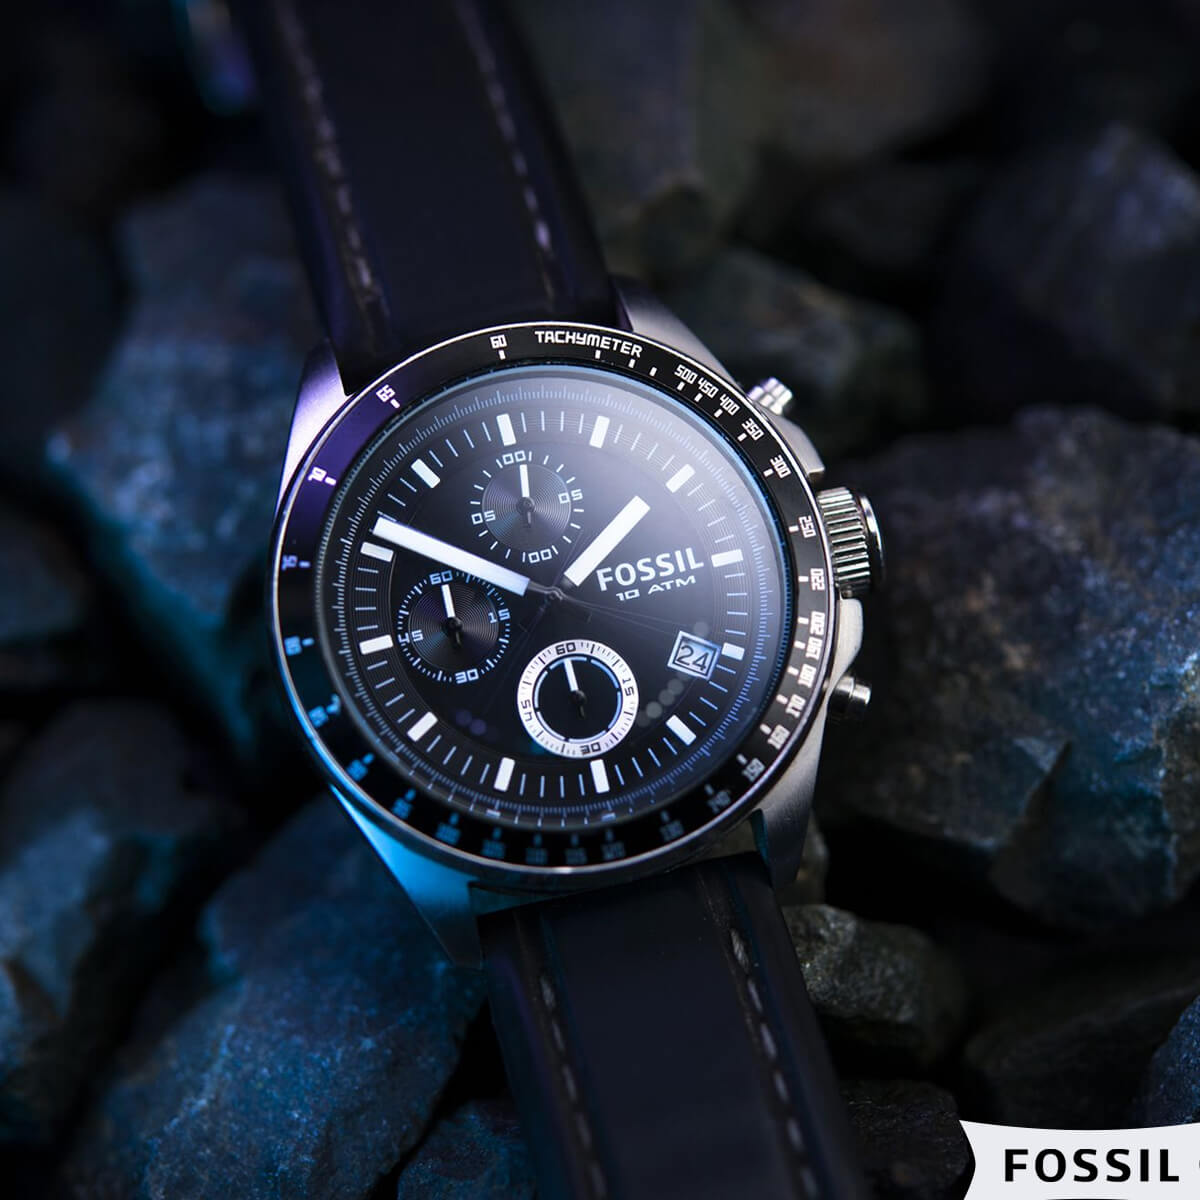 Fashion Your Time with Luxurious Fossil Watches